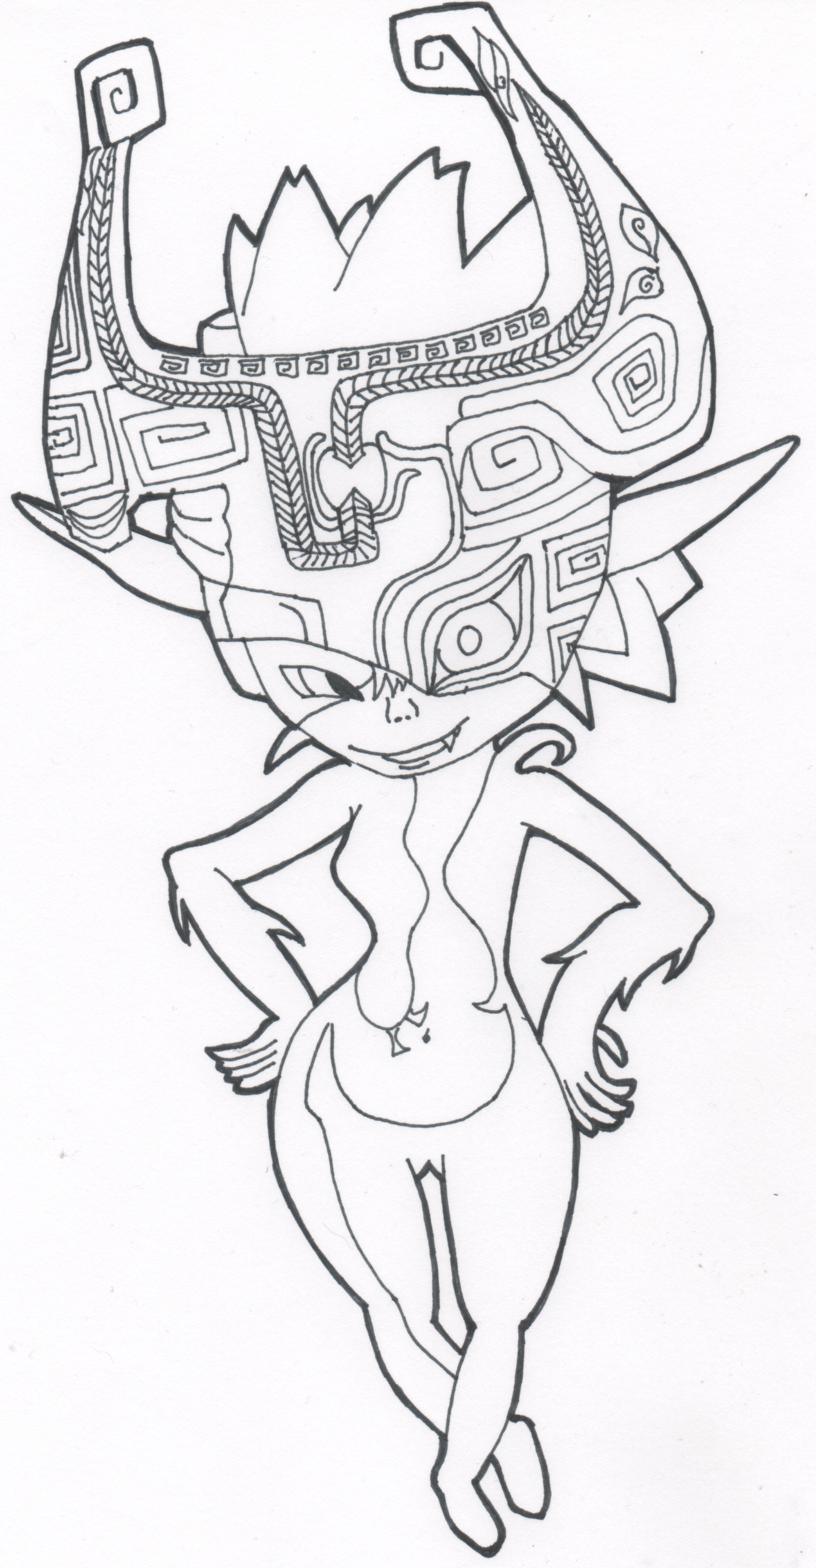 midna lineart by cute tiger on deviantart